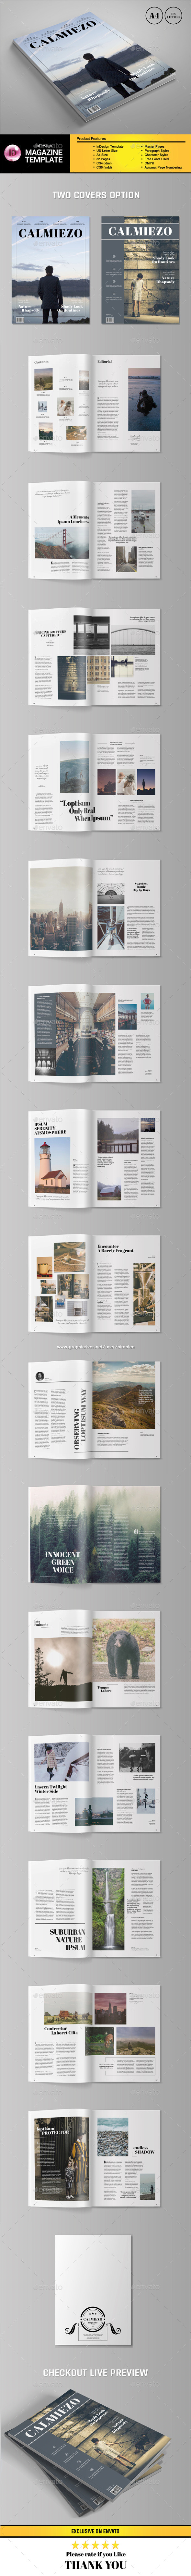 Calm Look Magazine Template - Magazines Print Templates